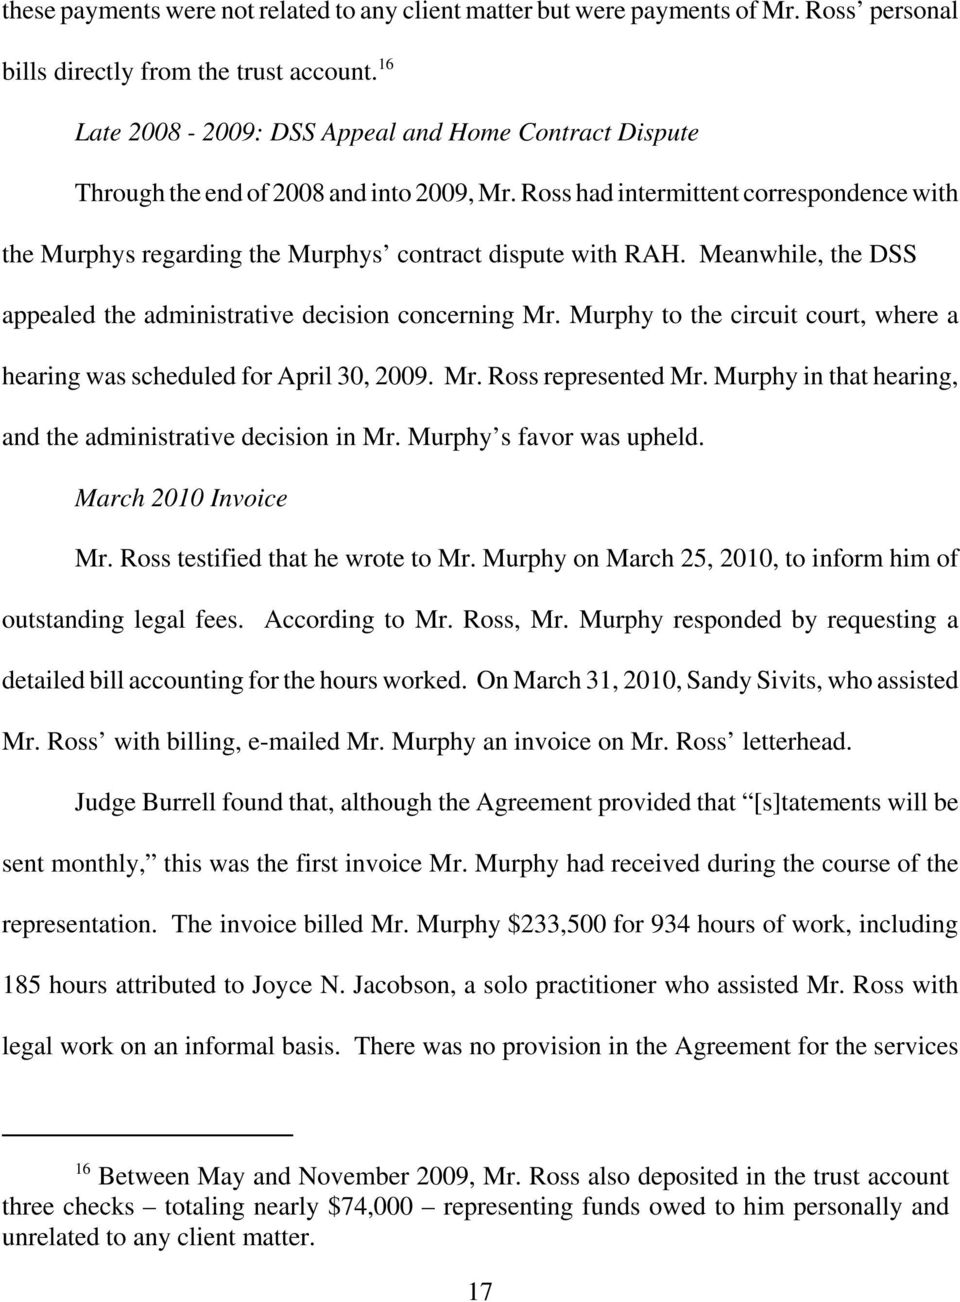 Ross had intermittent correspondence with the Murphys regarding the Murphys contract dispute with RAH. Meanwhile, the DSS appealed the administrative decision concerning Mr.